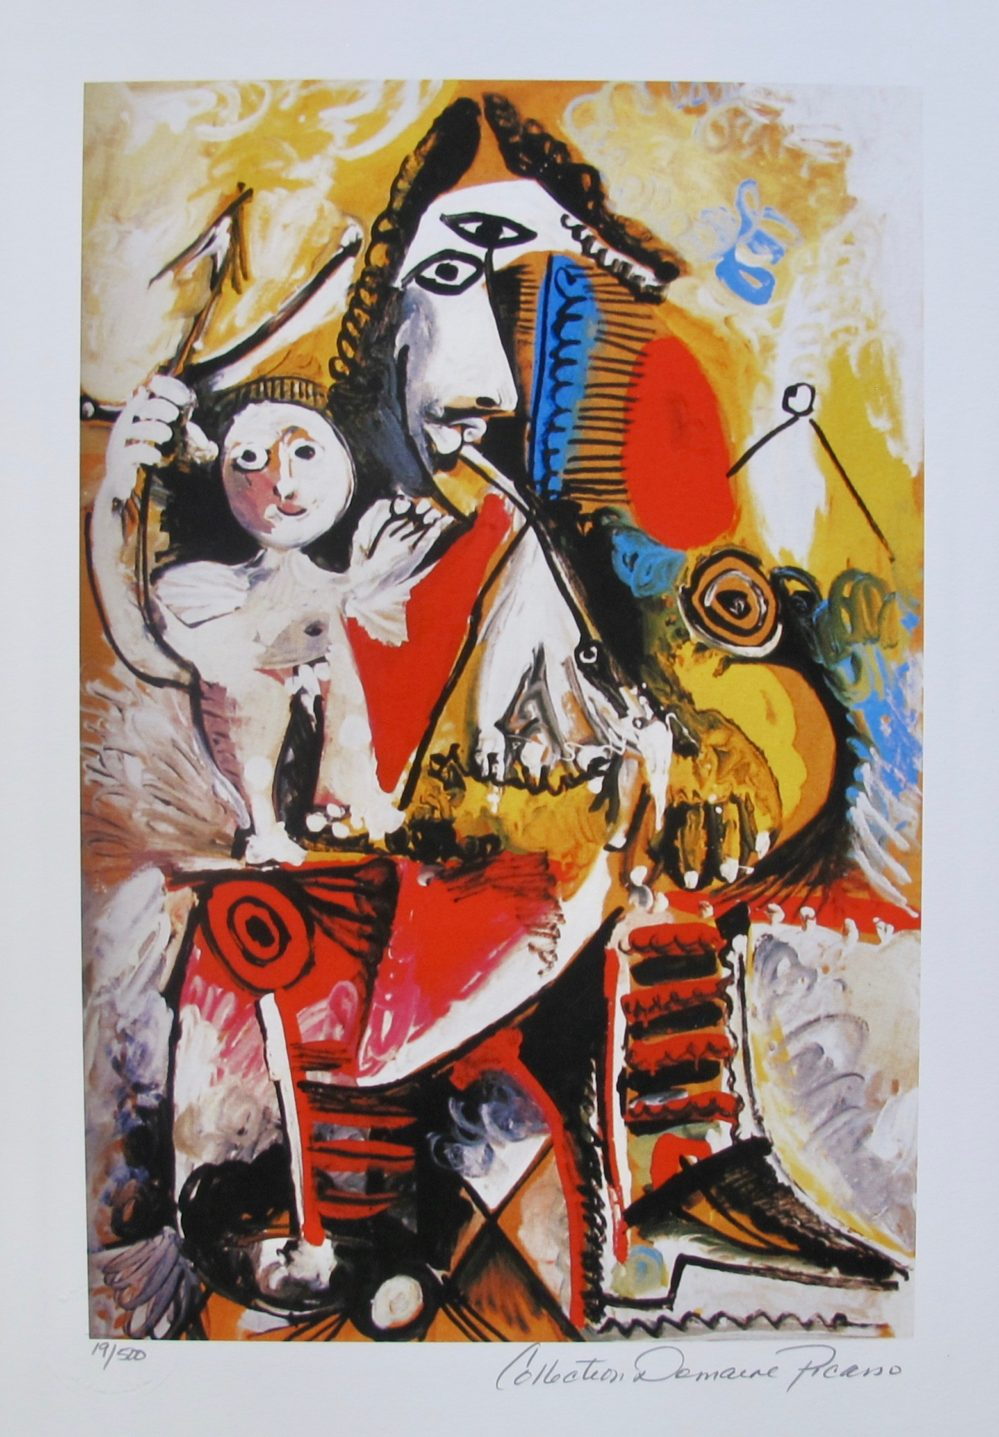 Pablo Picasso CHILD ON MAN'S LAP Estate Signed Limited Edition Small Giclee